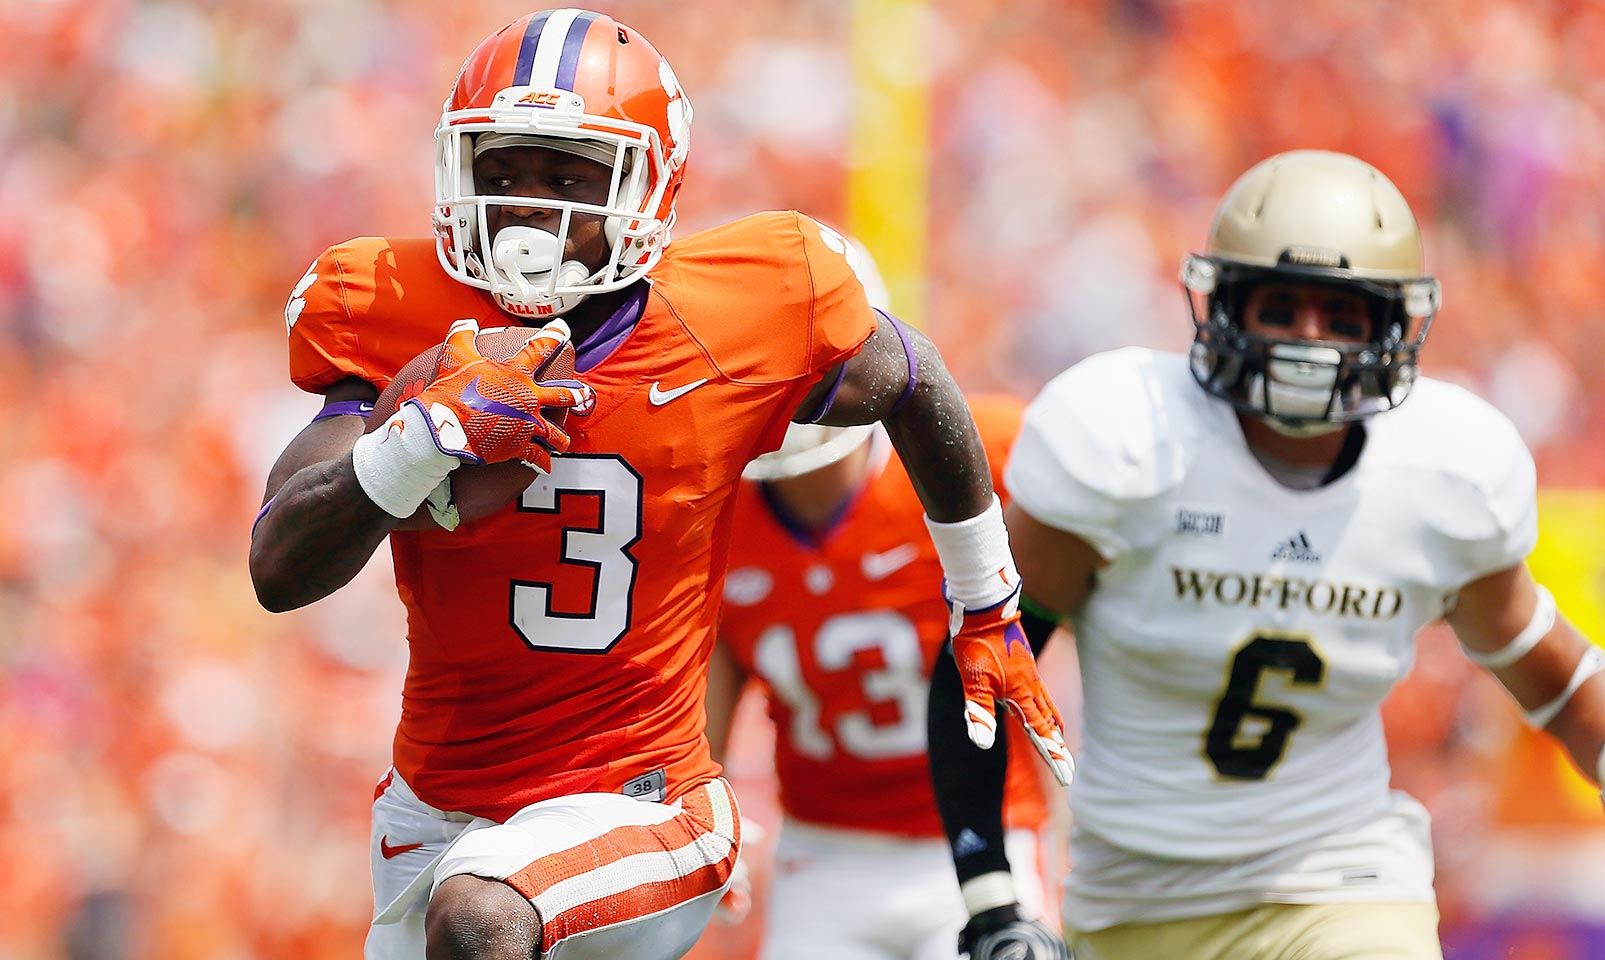 Clemson 49, Wofford 10: The Tigers kicked of the season with a comfortable win over the Terriers in which Clemson scored the first 35 points of the game.